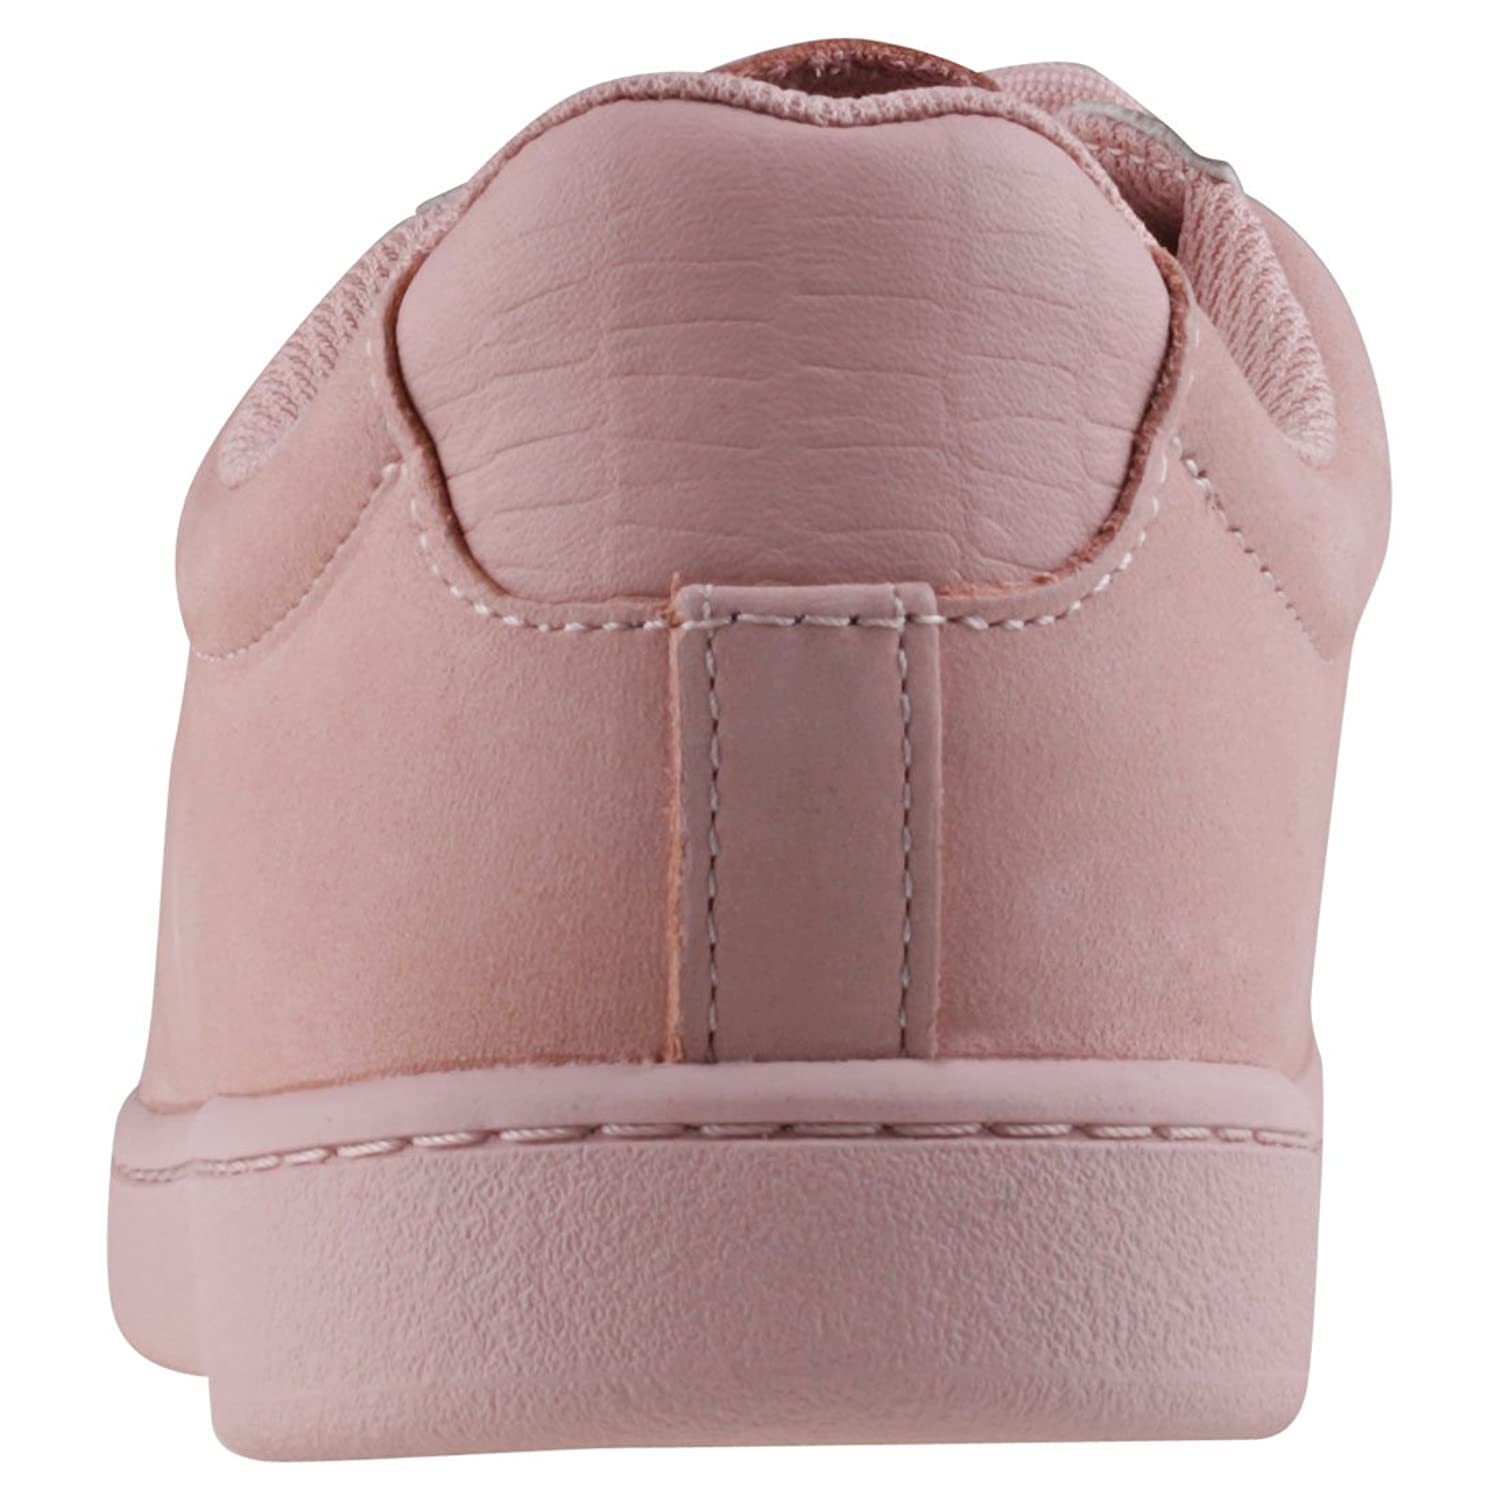 72e8f248c Lacoste Carnaby Evo Trainers Pink  Amazon.co.uk  Shoes   Bags